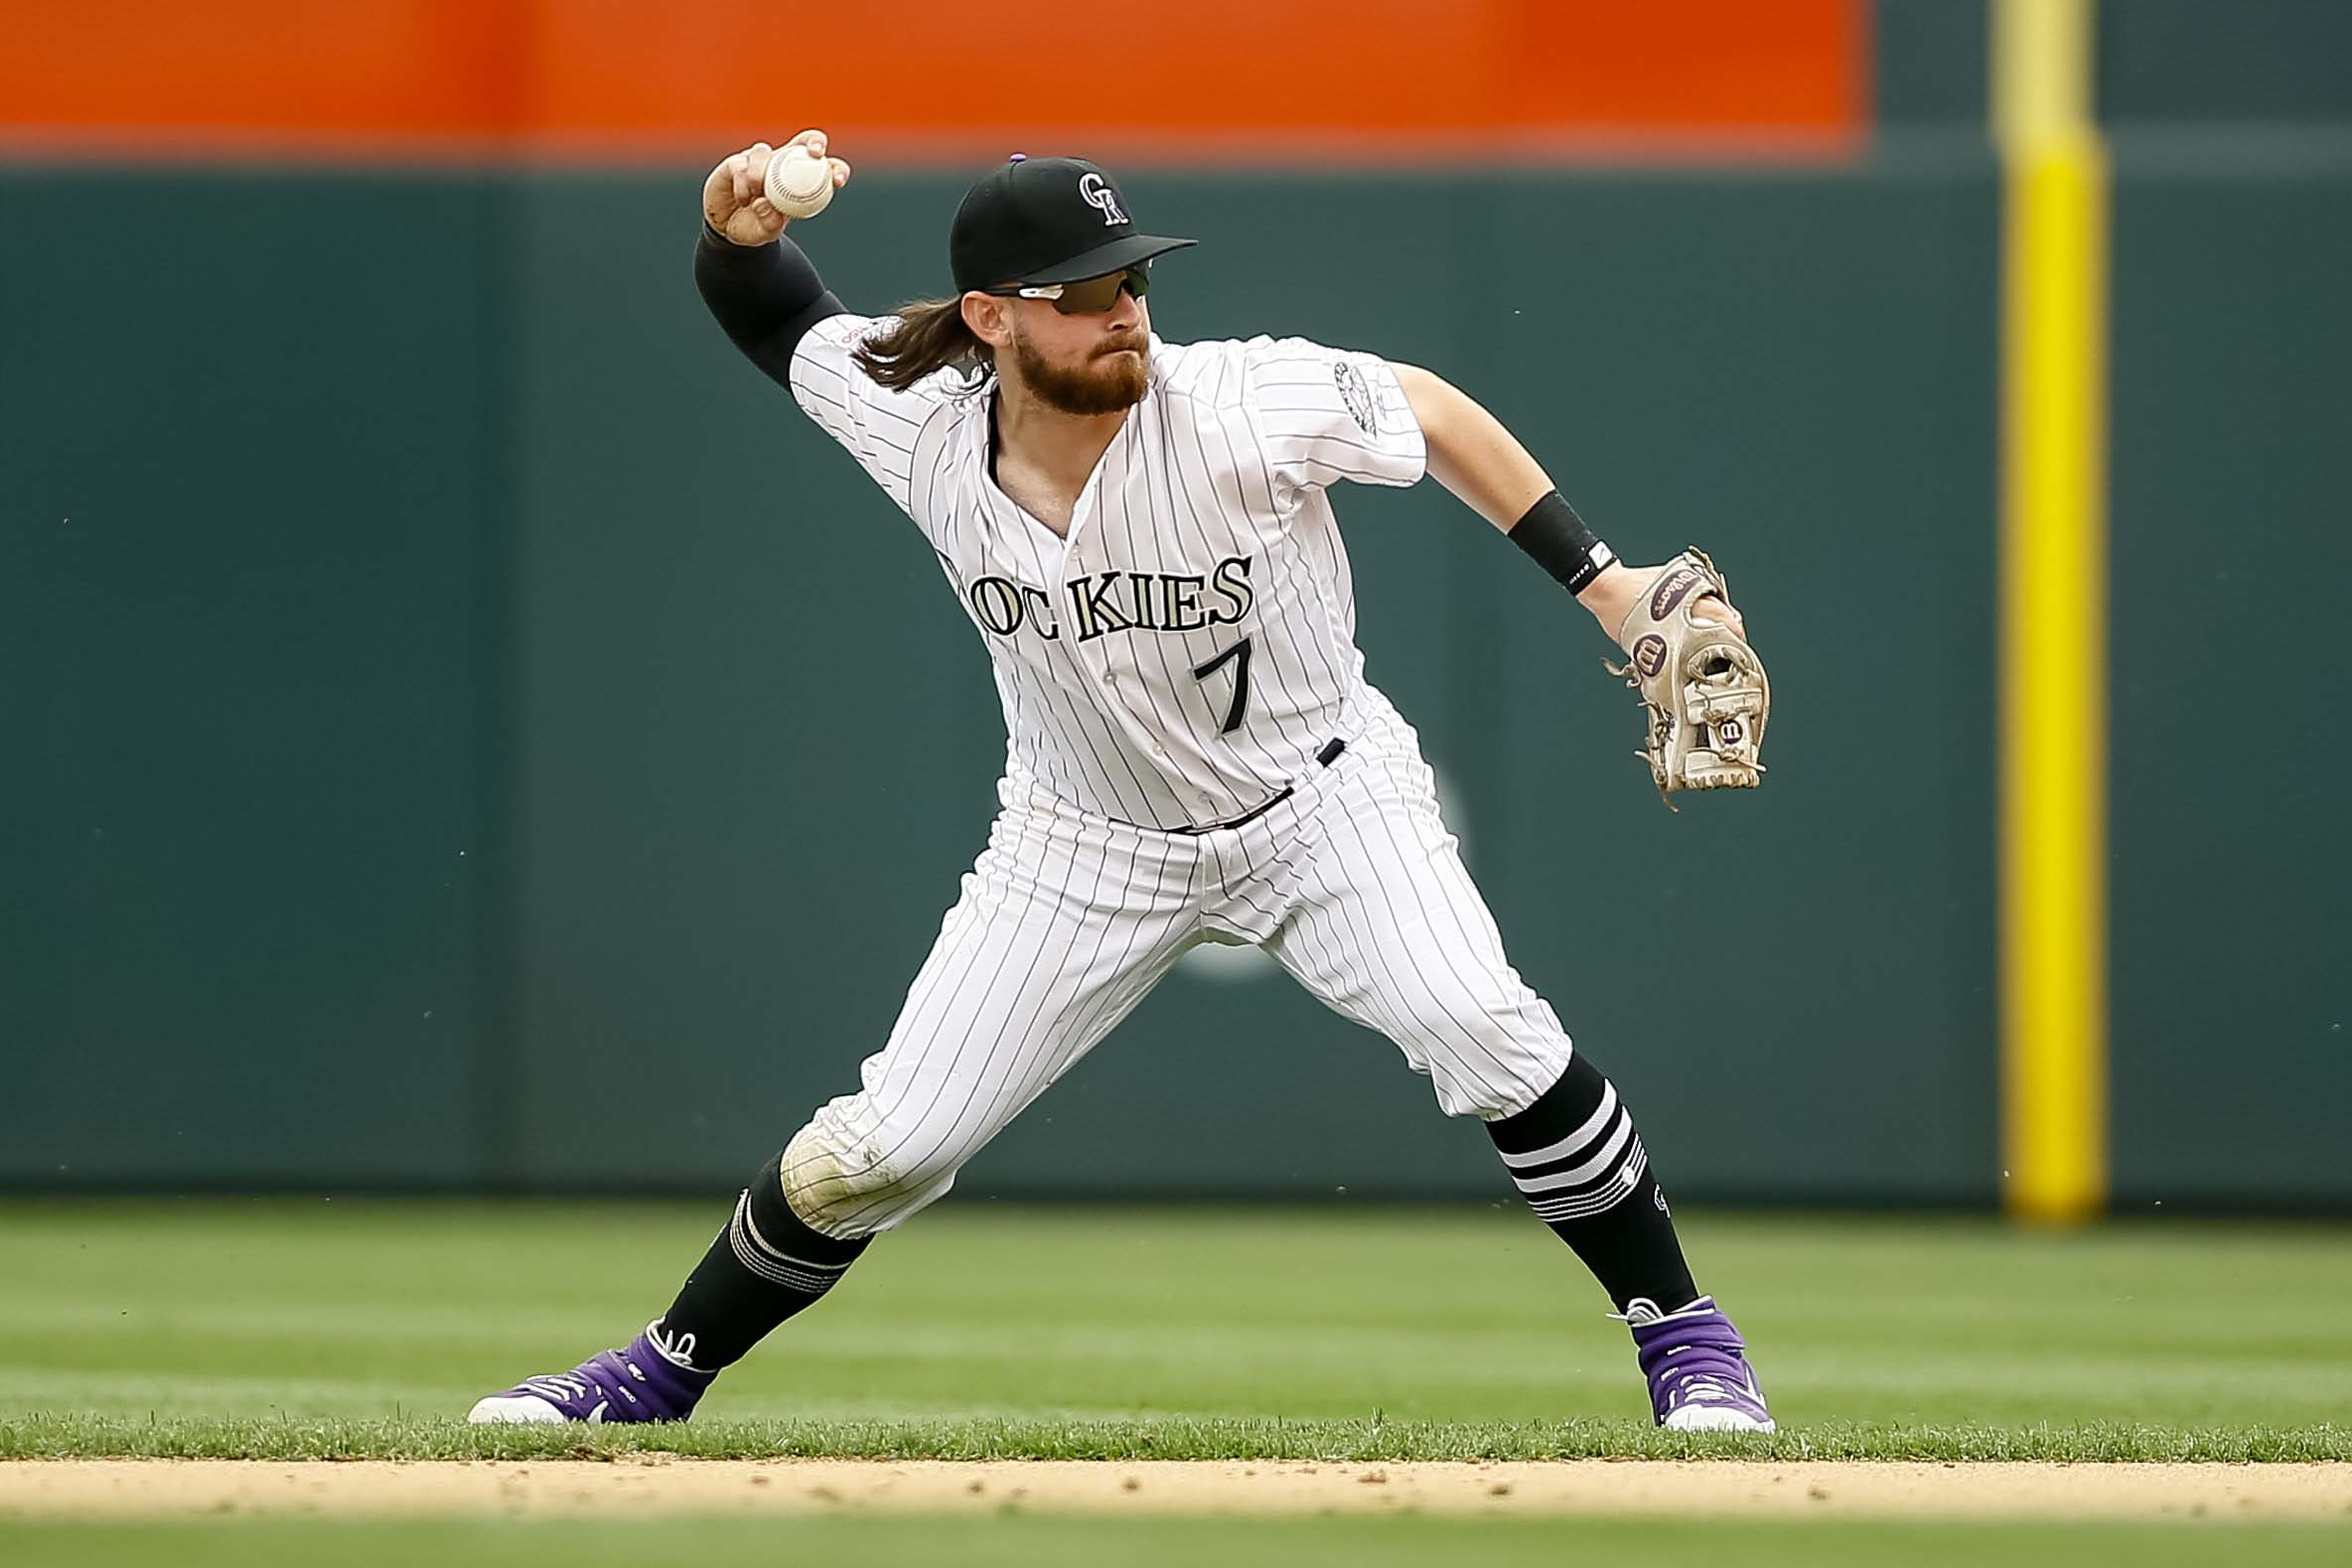 MLB: Baltimore Orioles at Colorado Rockies